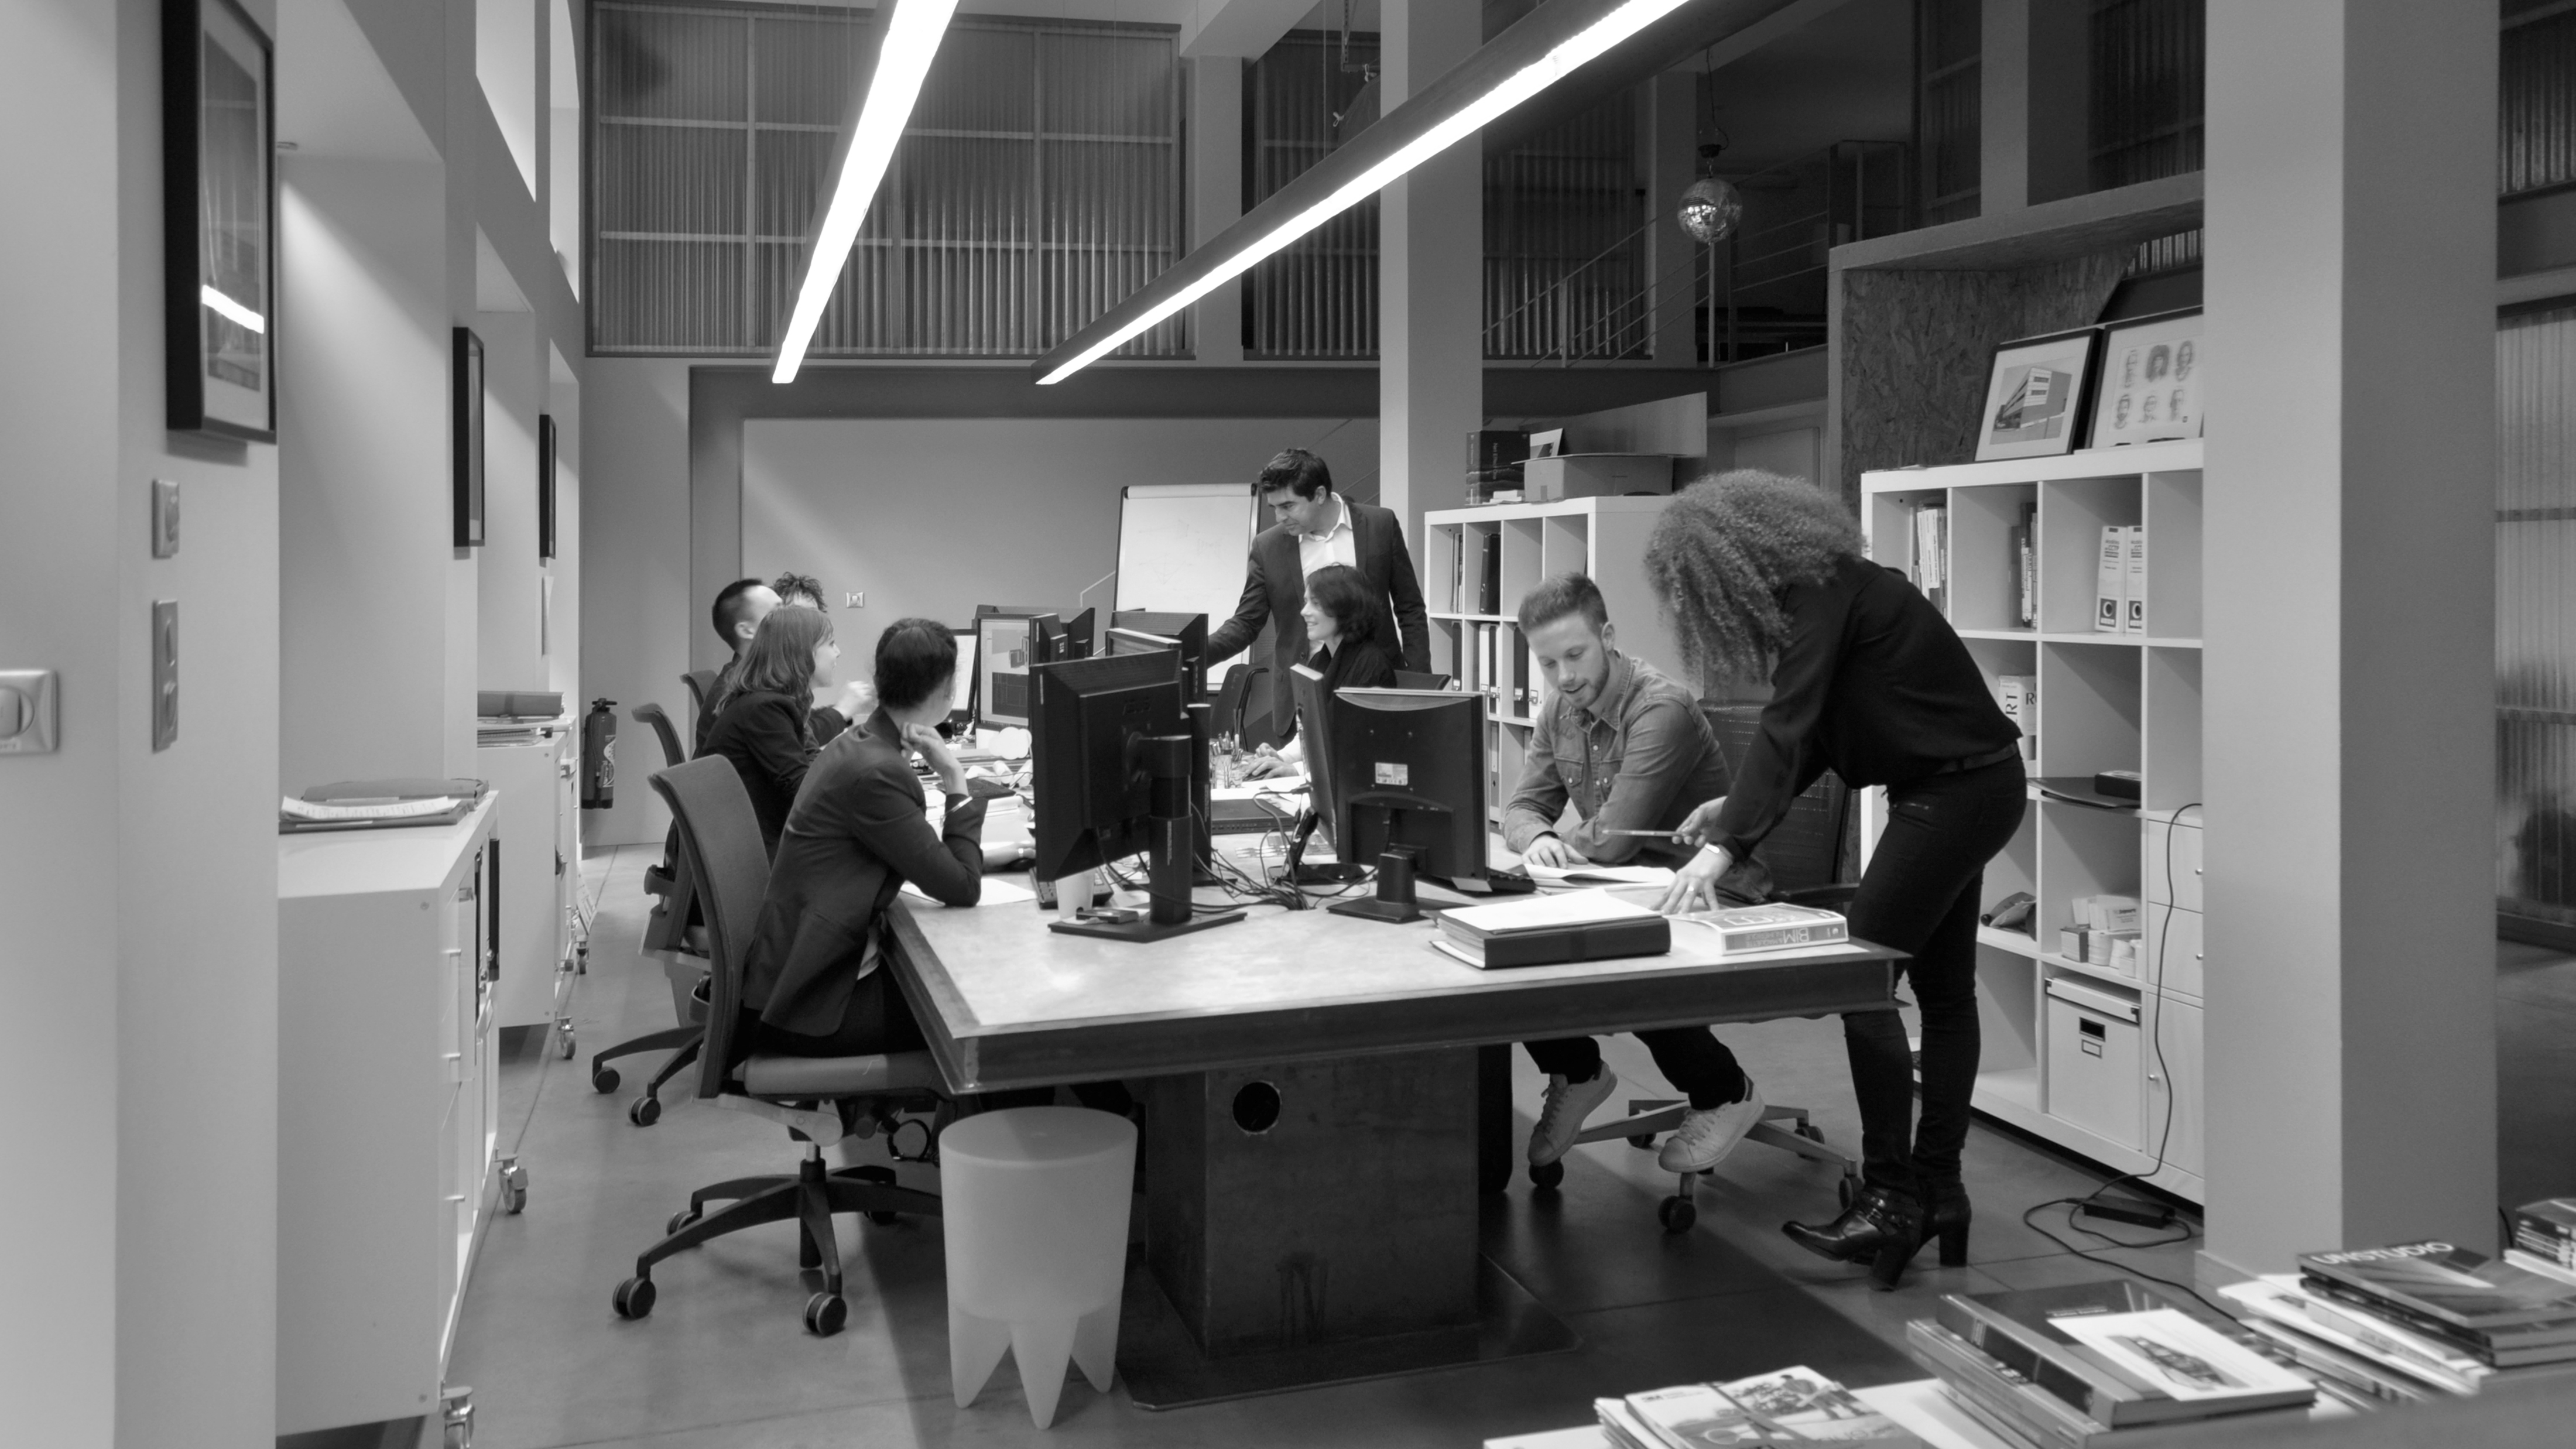 vue-agence-idp-architectes-equipe-agence-architecture-toulouse